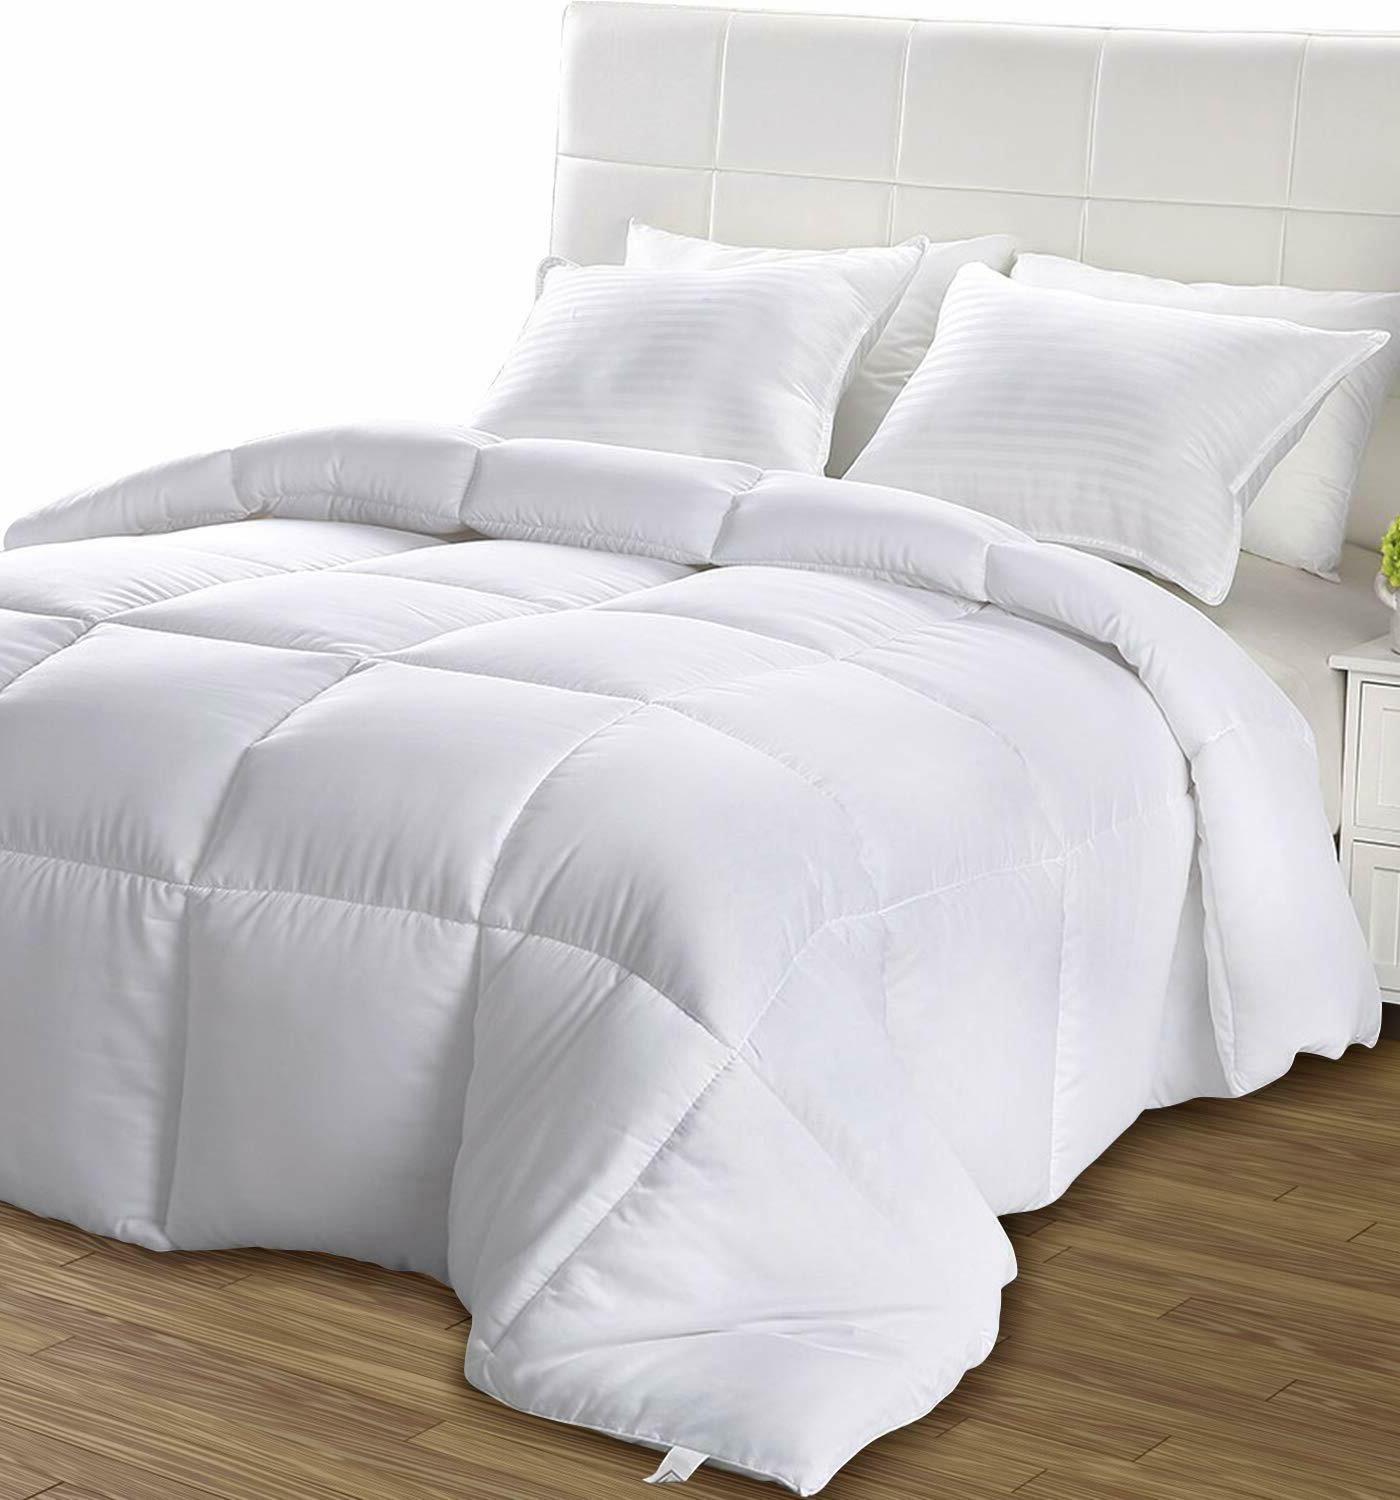 Utopia Bedding Goose Down Alternative Comforter Hypo Allerge